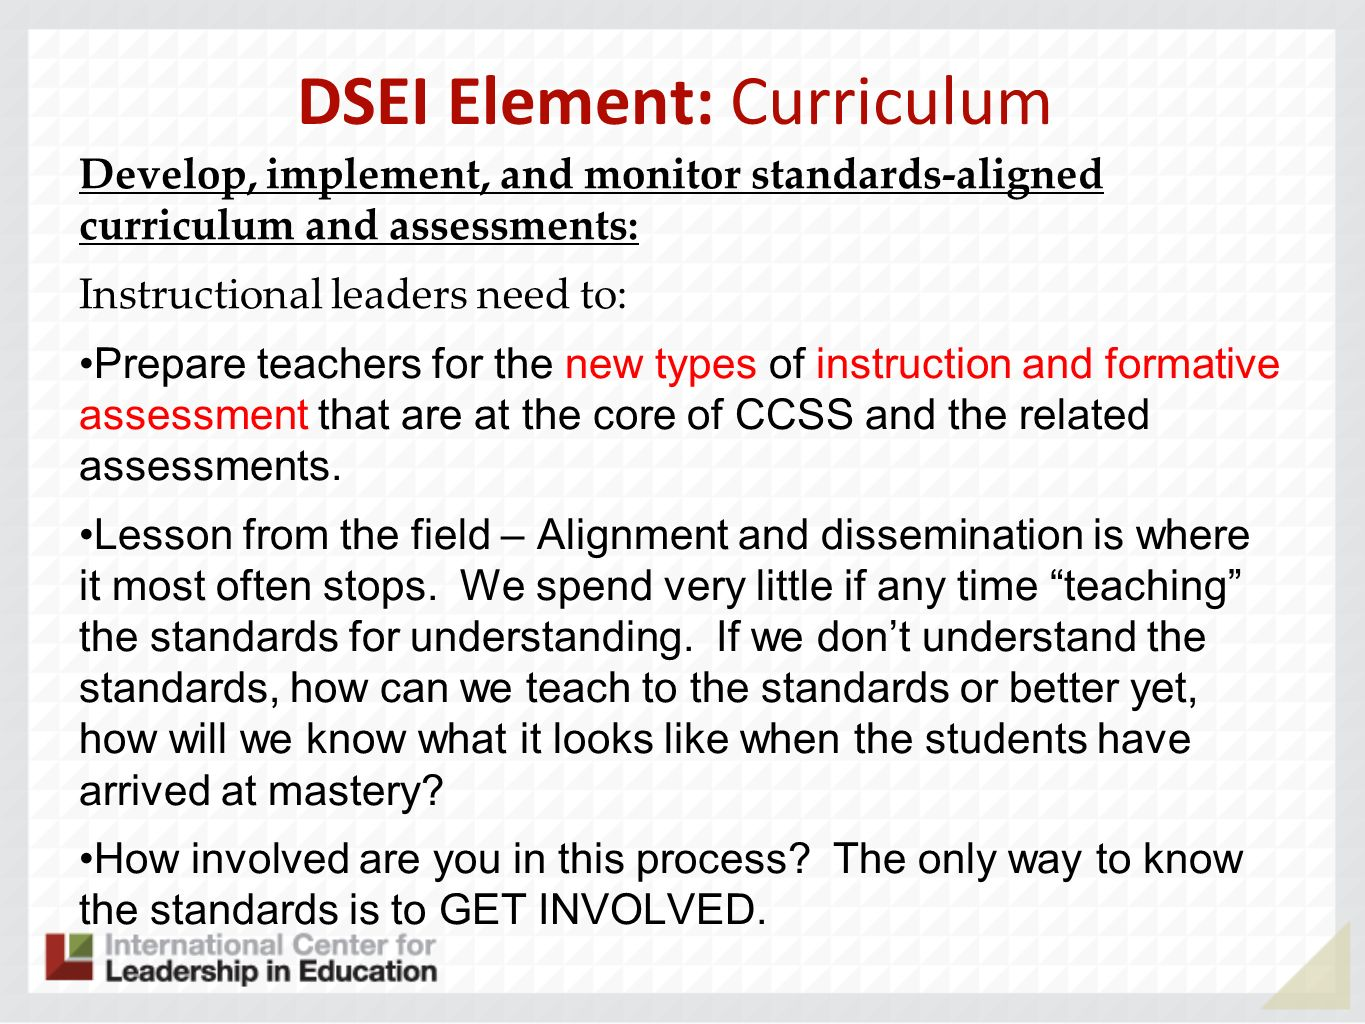 DSEI Element: Curriculum Develop, implement, and monitor standards-aligned curriculum and assessments: Instructional leaders need to: Prepare teachers